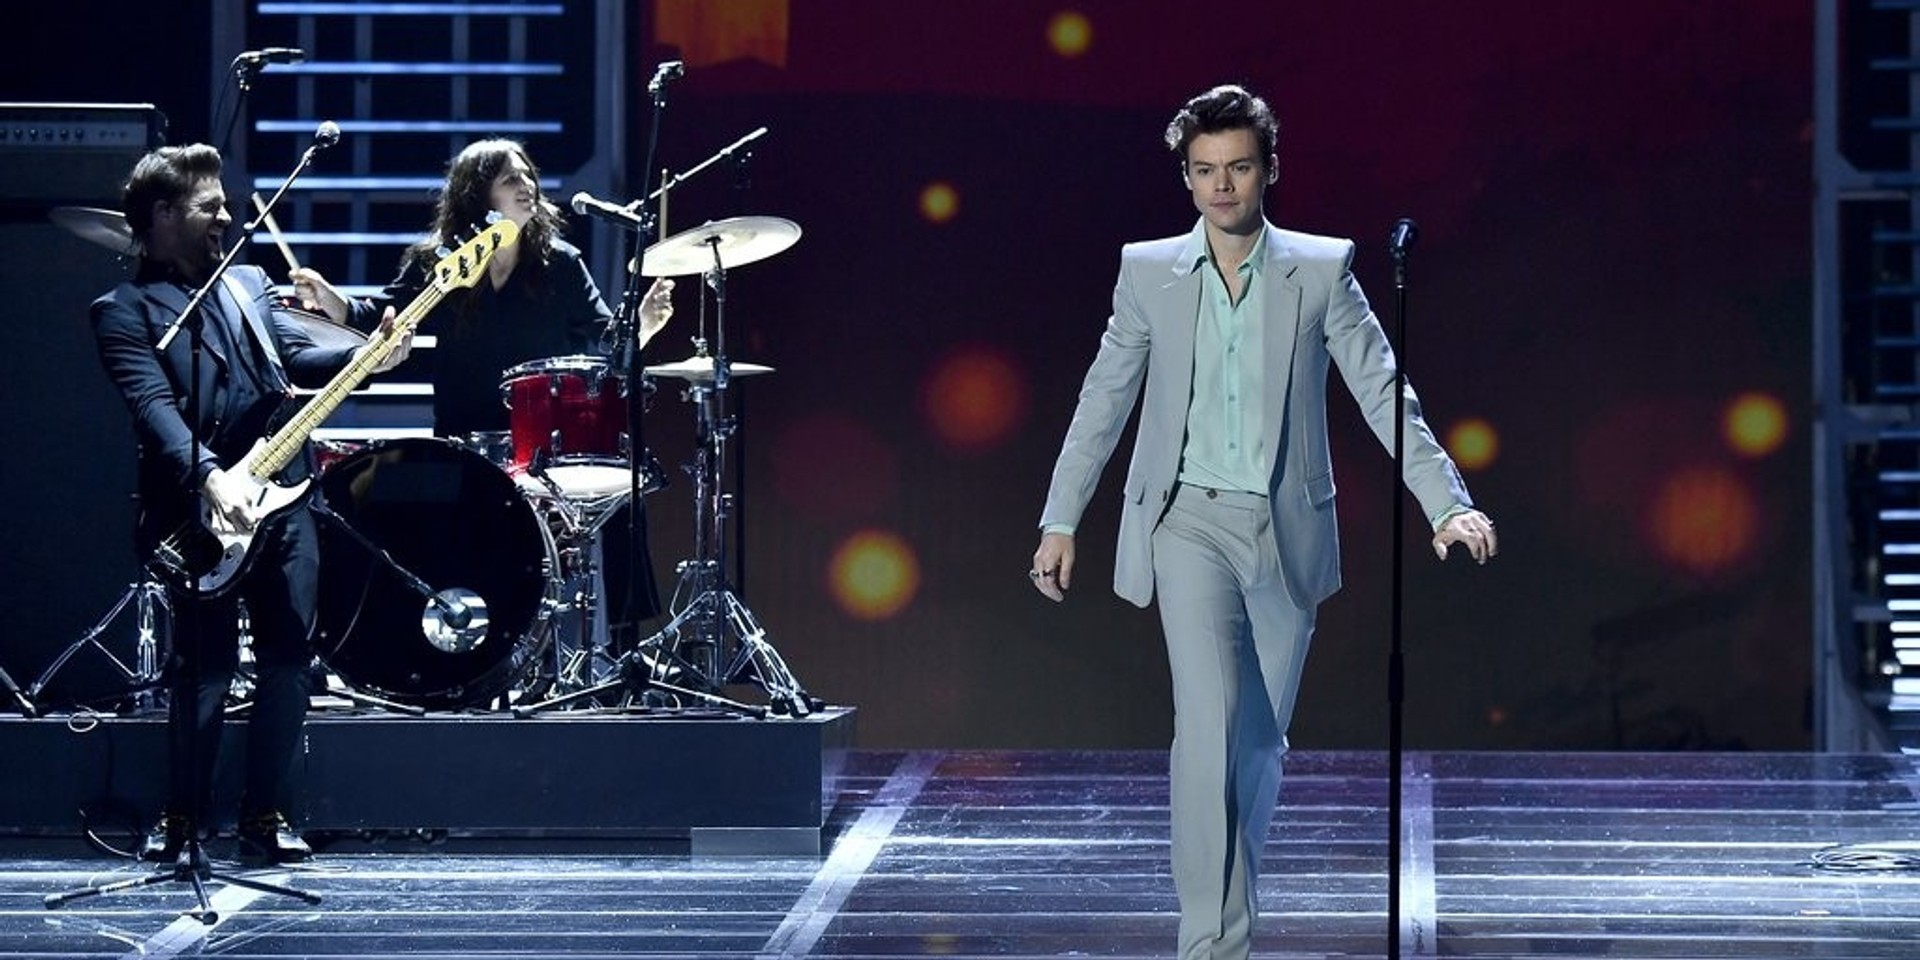 Harry Styles steals the show at Victoria's Secret runway in Shanghai